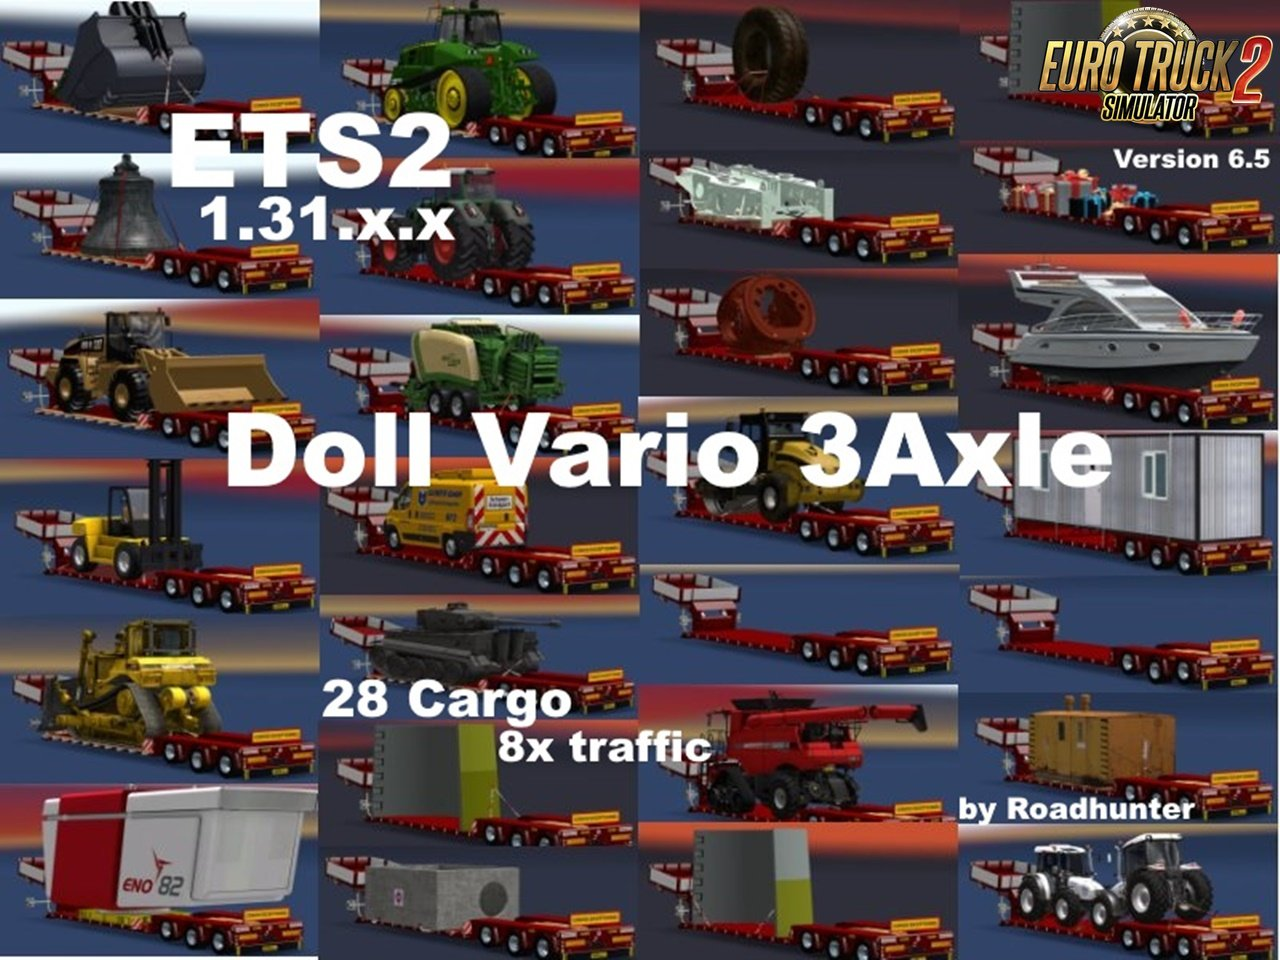 Doll Vario 3Achs with new backlight and in Traffic v6.5.1 by Roadhunter